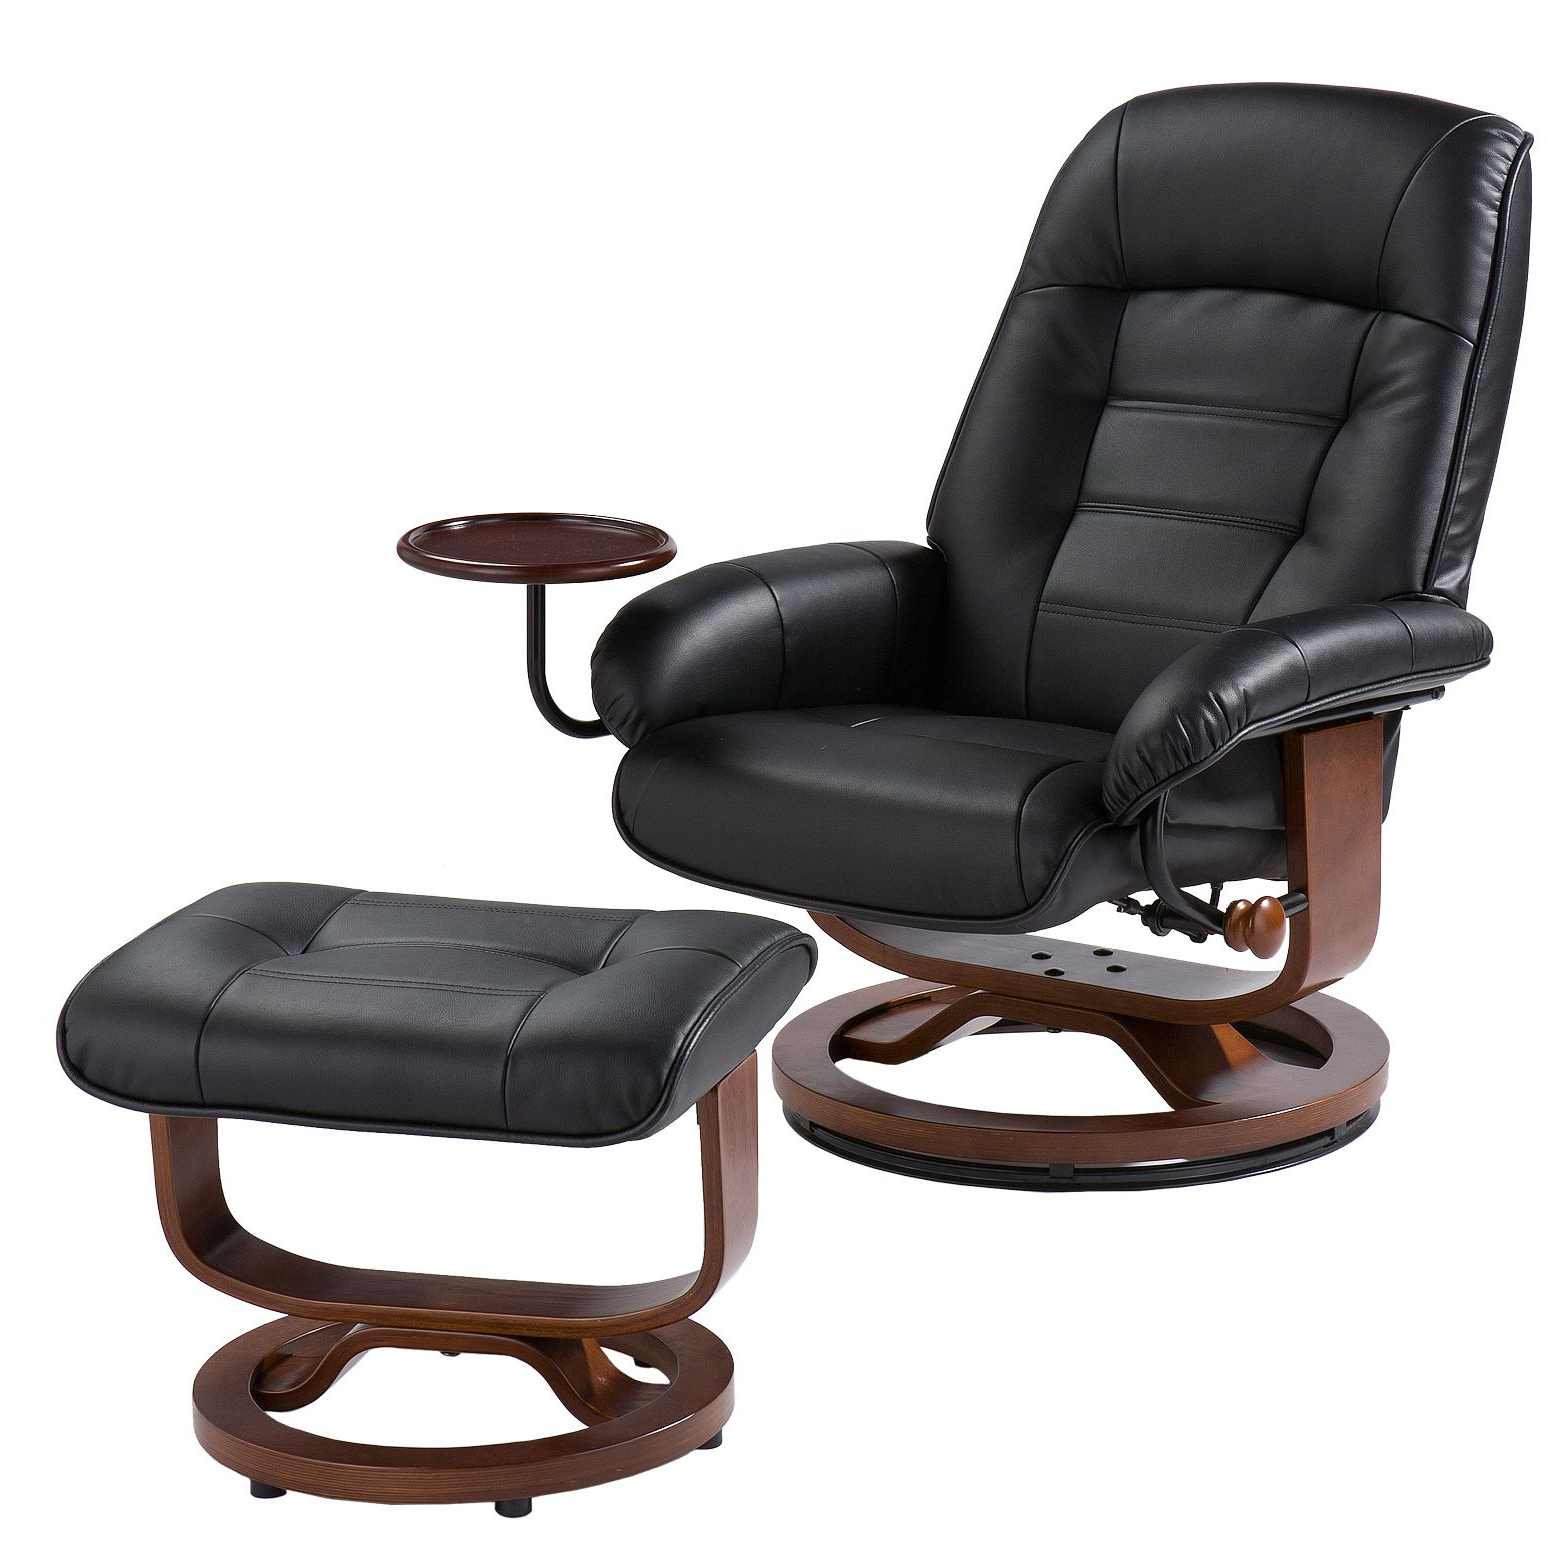 Espresso Leather Swivel Chairs With Regard To Popular Euro Swivel Recliners – Stargate Cinema (View 7 of 20)